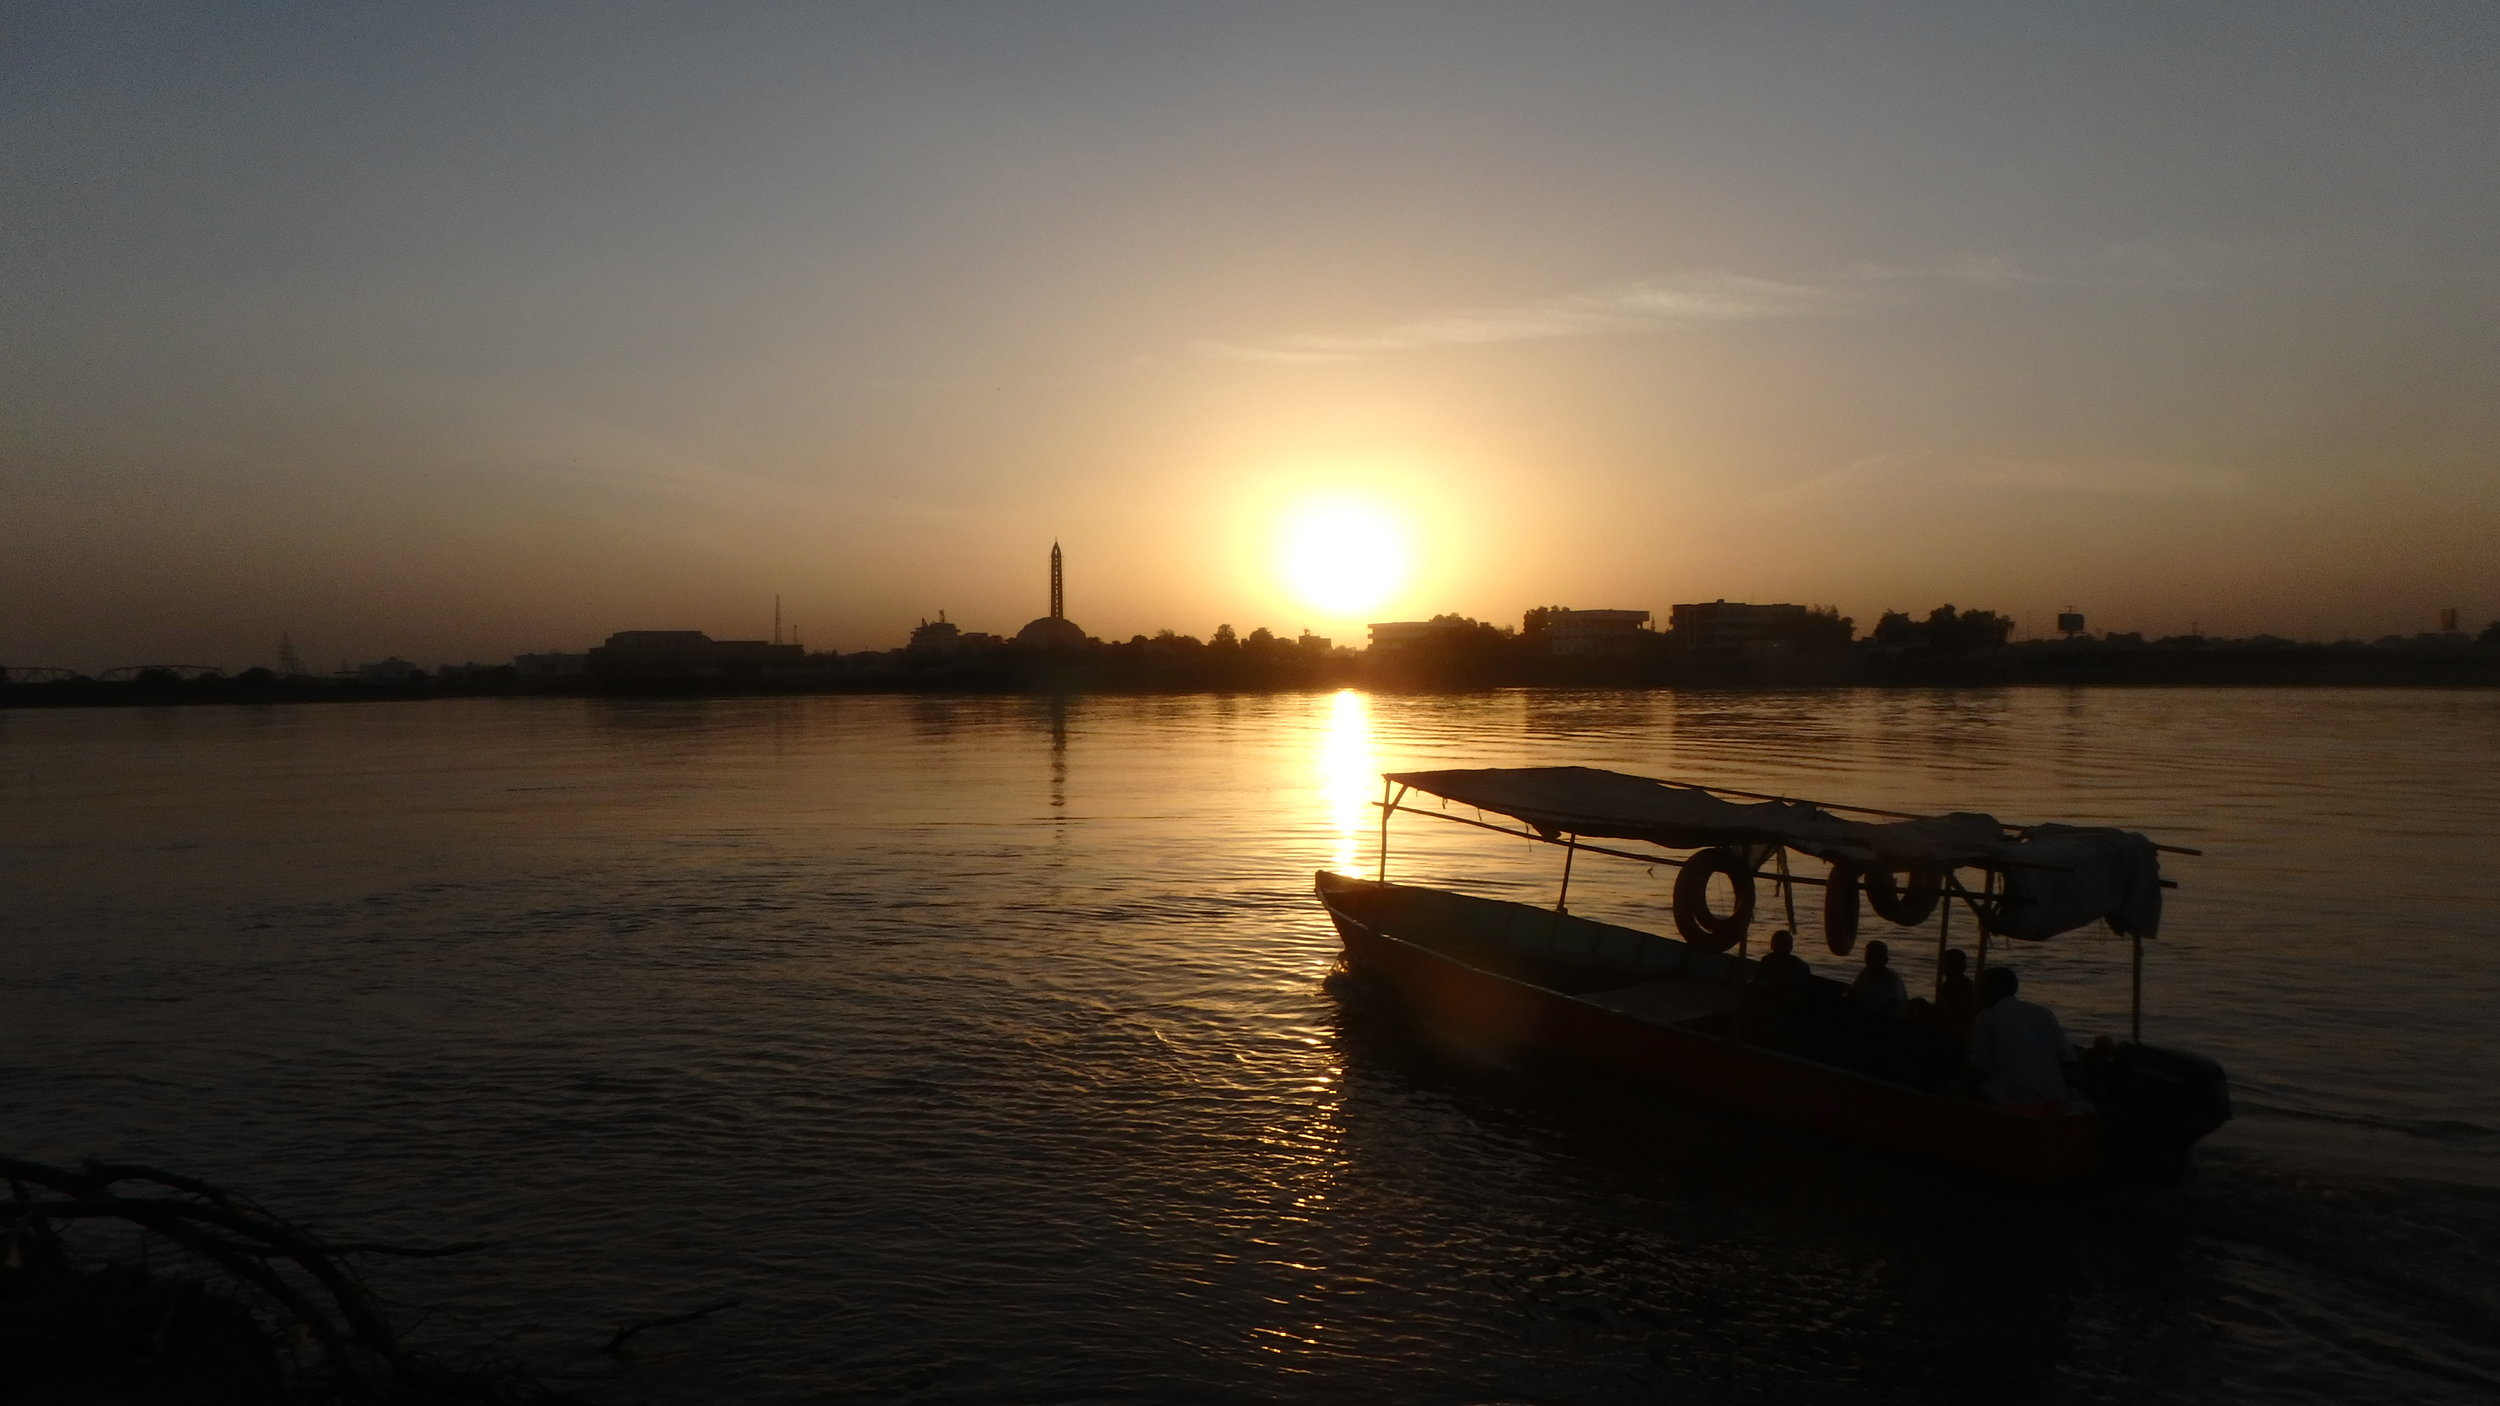 Crossing the Nile, Khartoum.